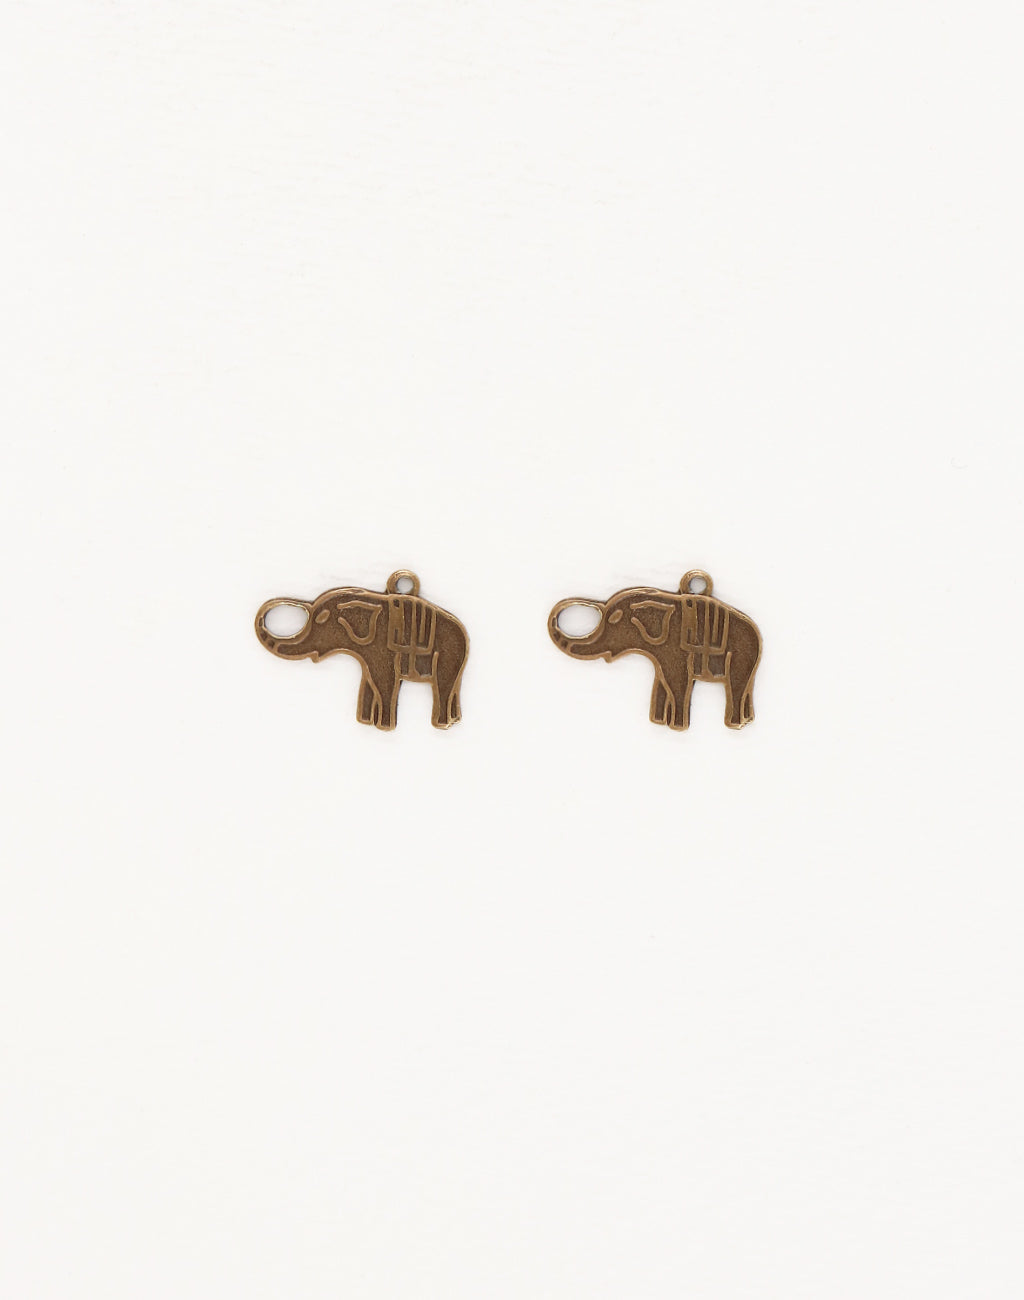 Charmed Elephant, 12x16mm, (2pcs)